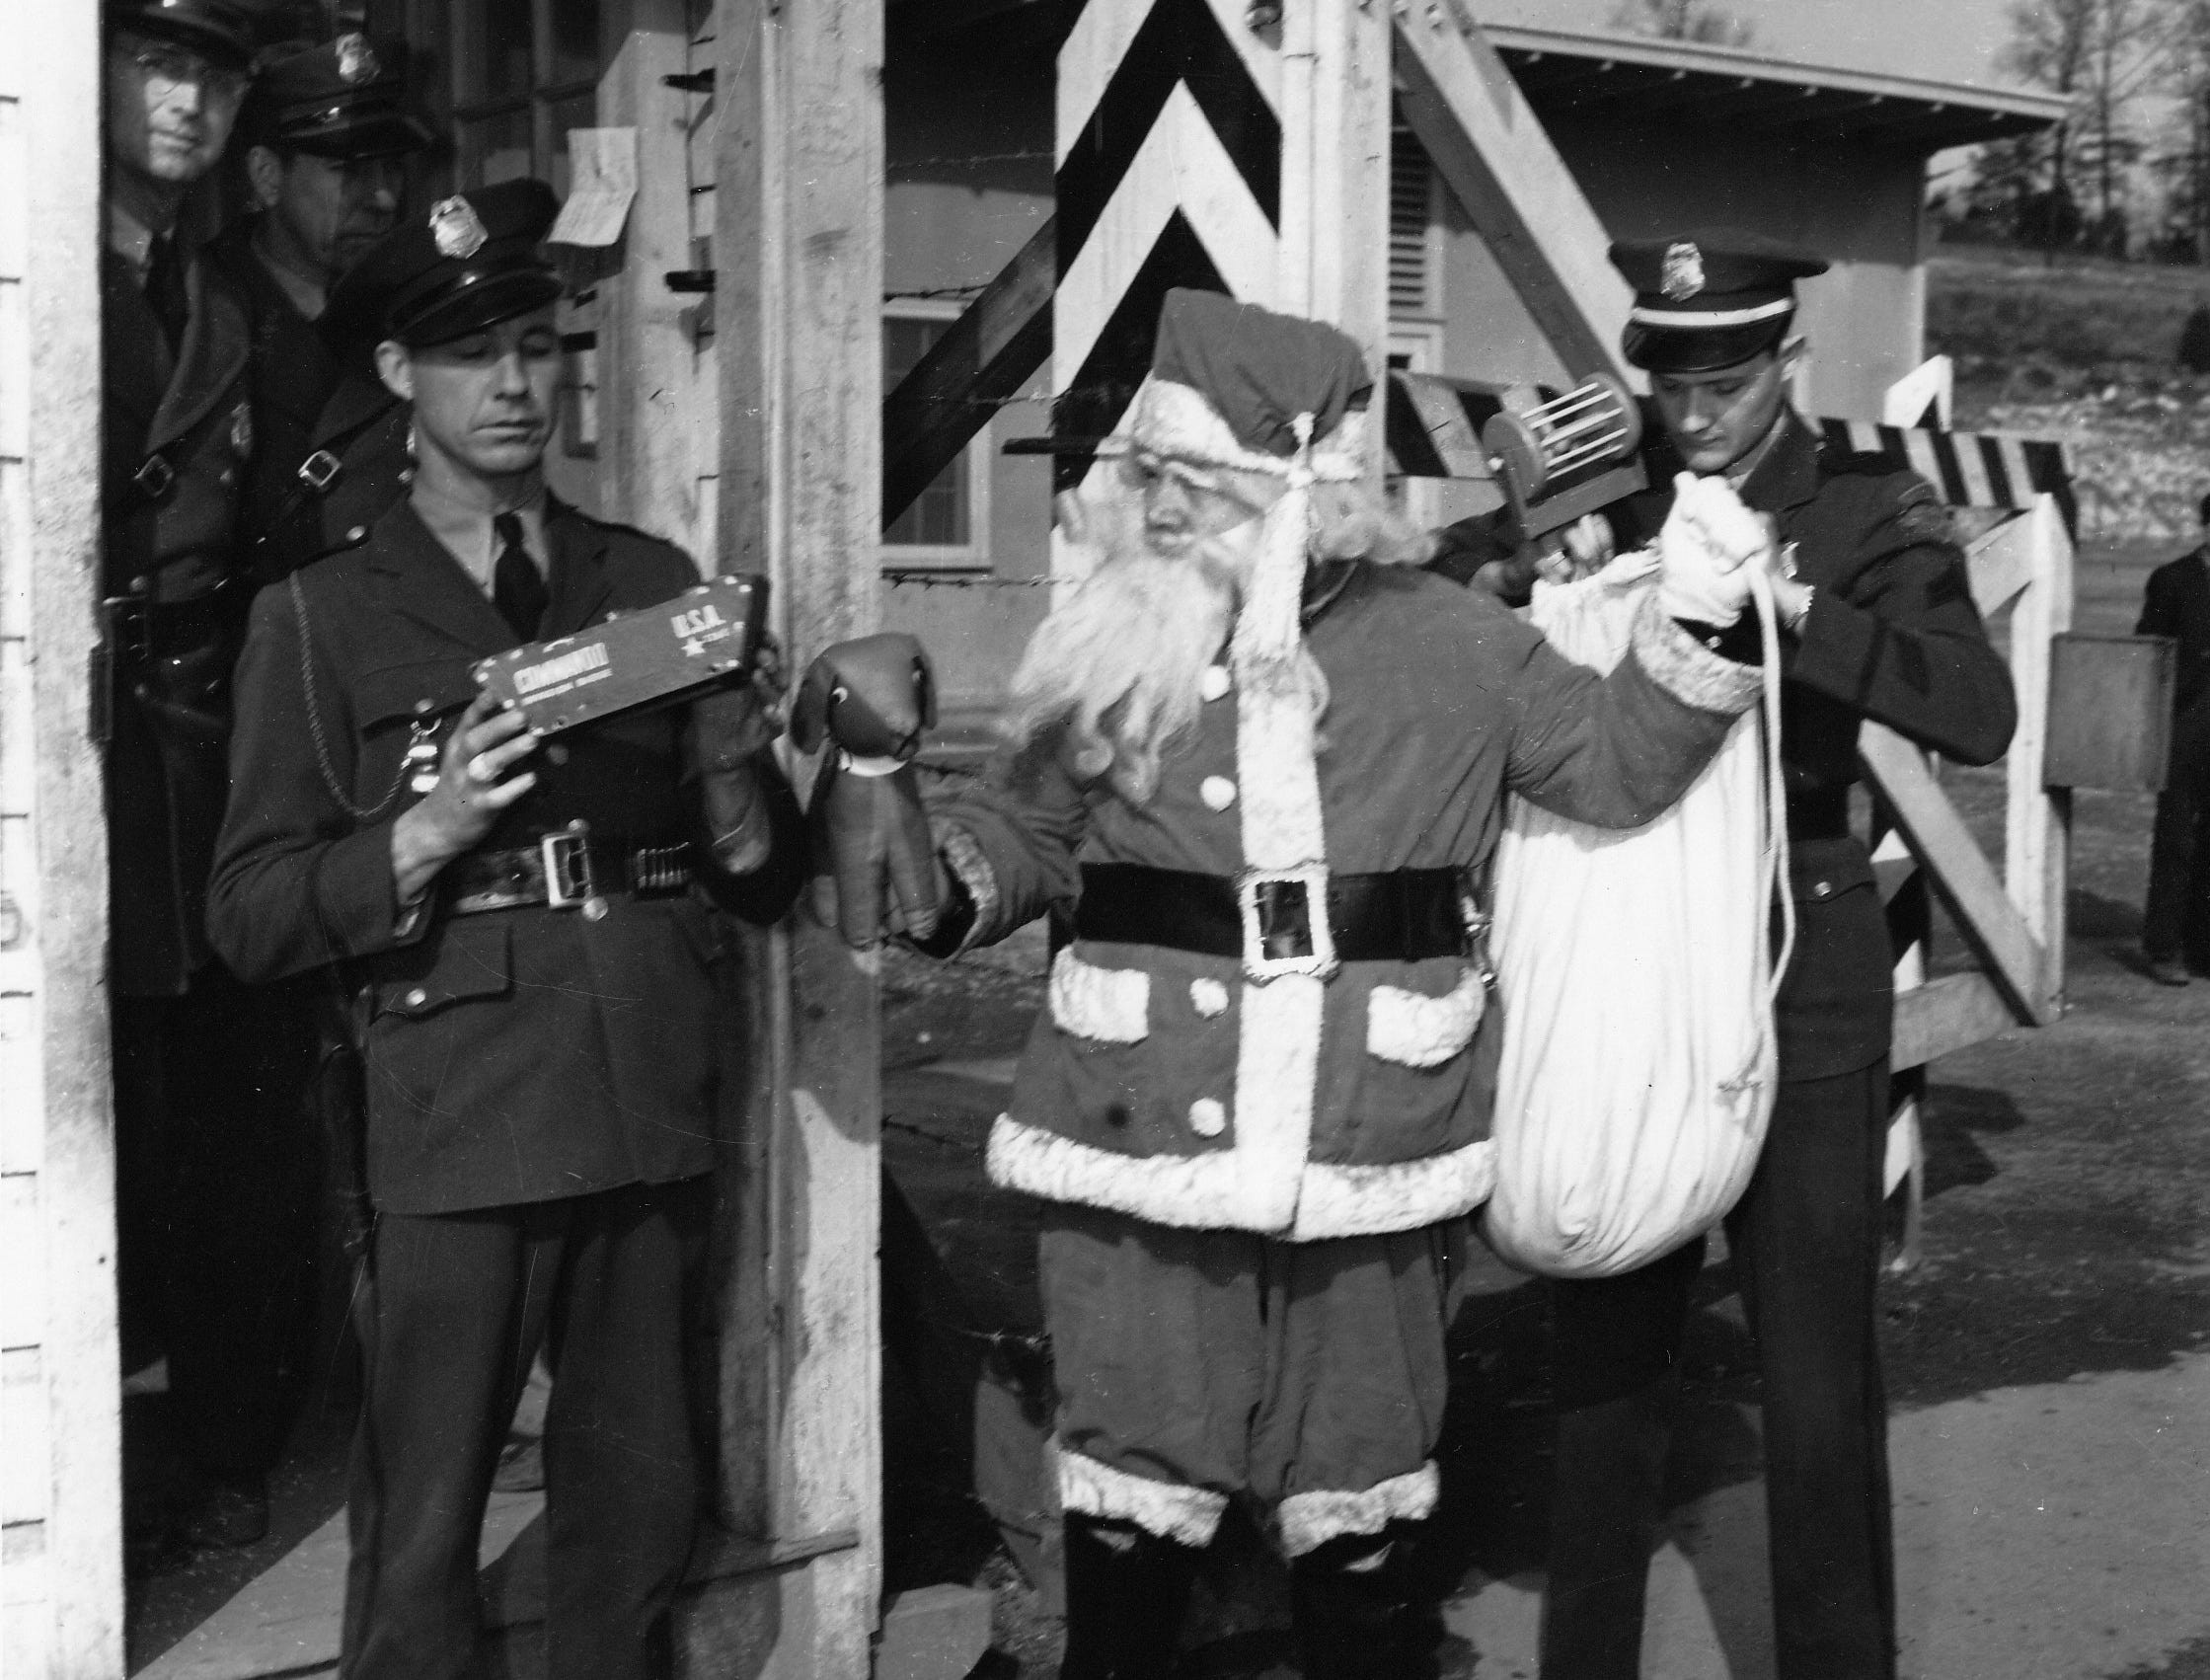 Even Santa got busted trying to enter the compound.  He didn't have security clearance and was turned away!